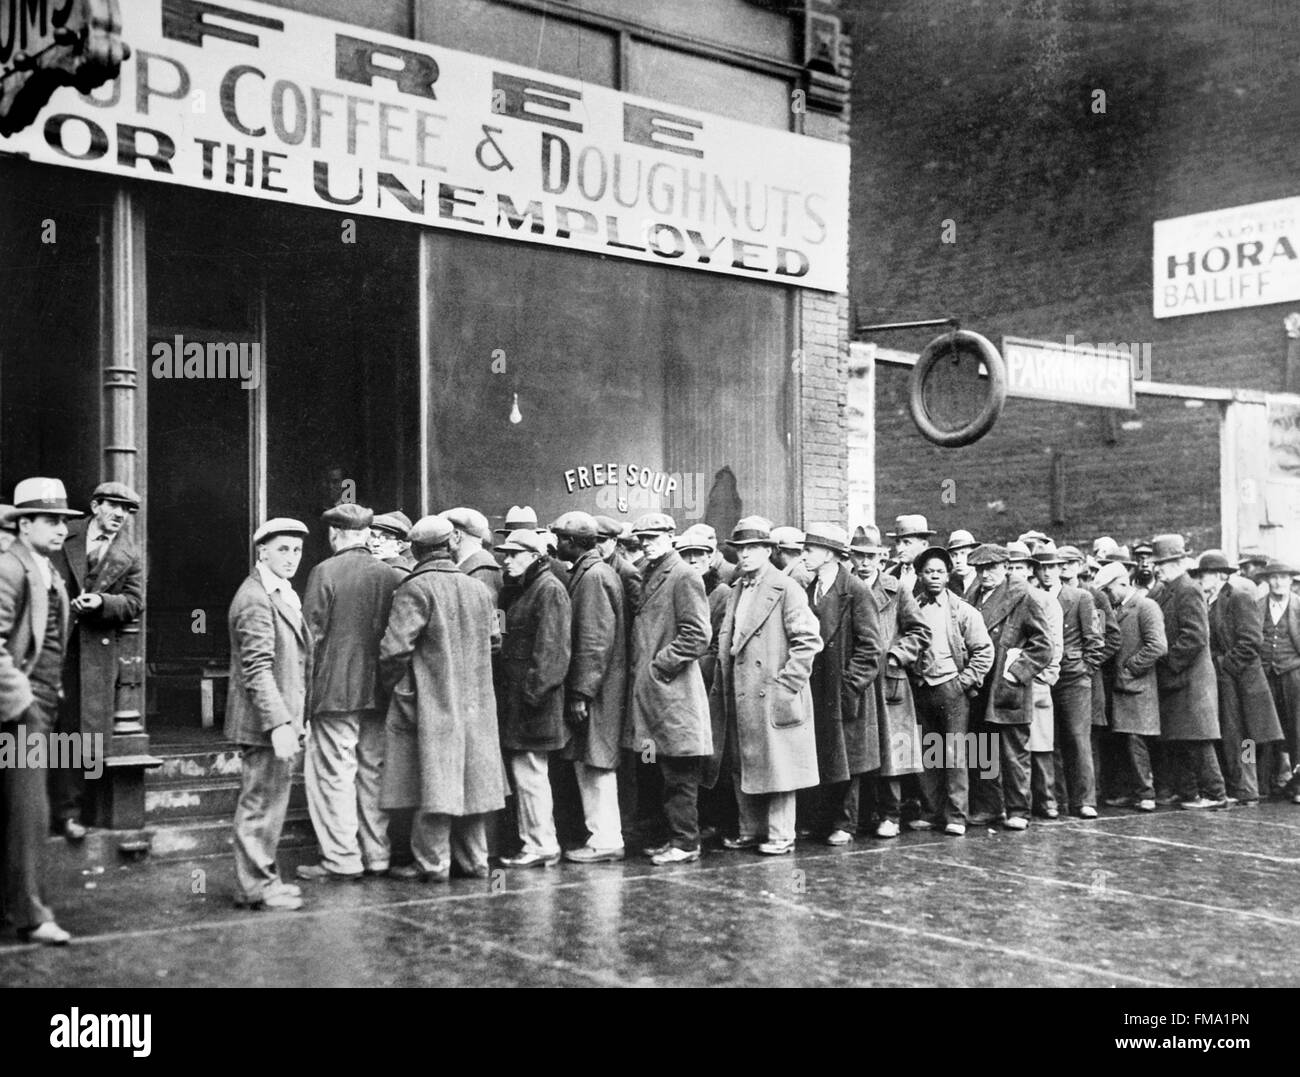 incredible Facts About Soup Kitchens During The Great Depression Part - 5: soup kitchen unemployed great depression stock photos soup kitchen rh alamy  com soup kitchen facts great depression depression era soup kitchens